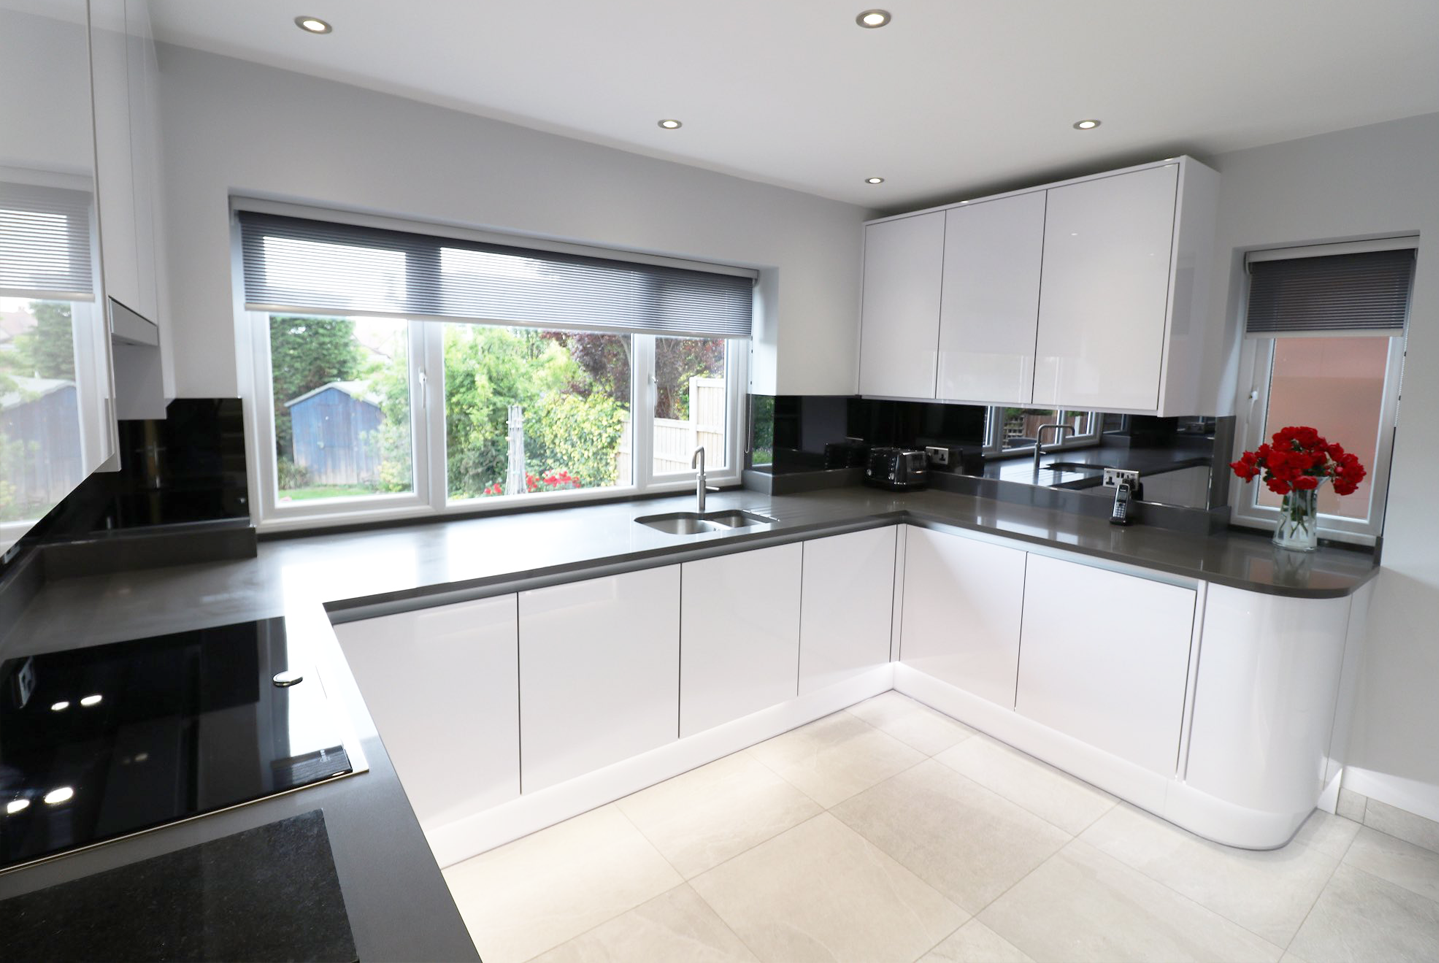 High Gloss Kitchens Liverpool.